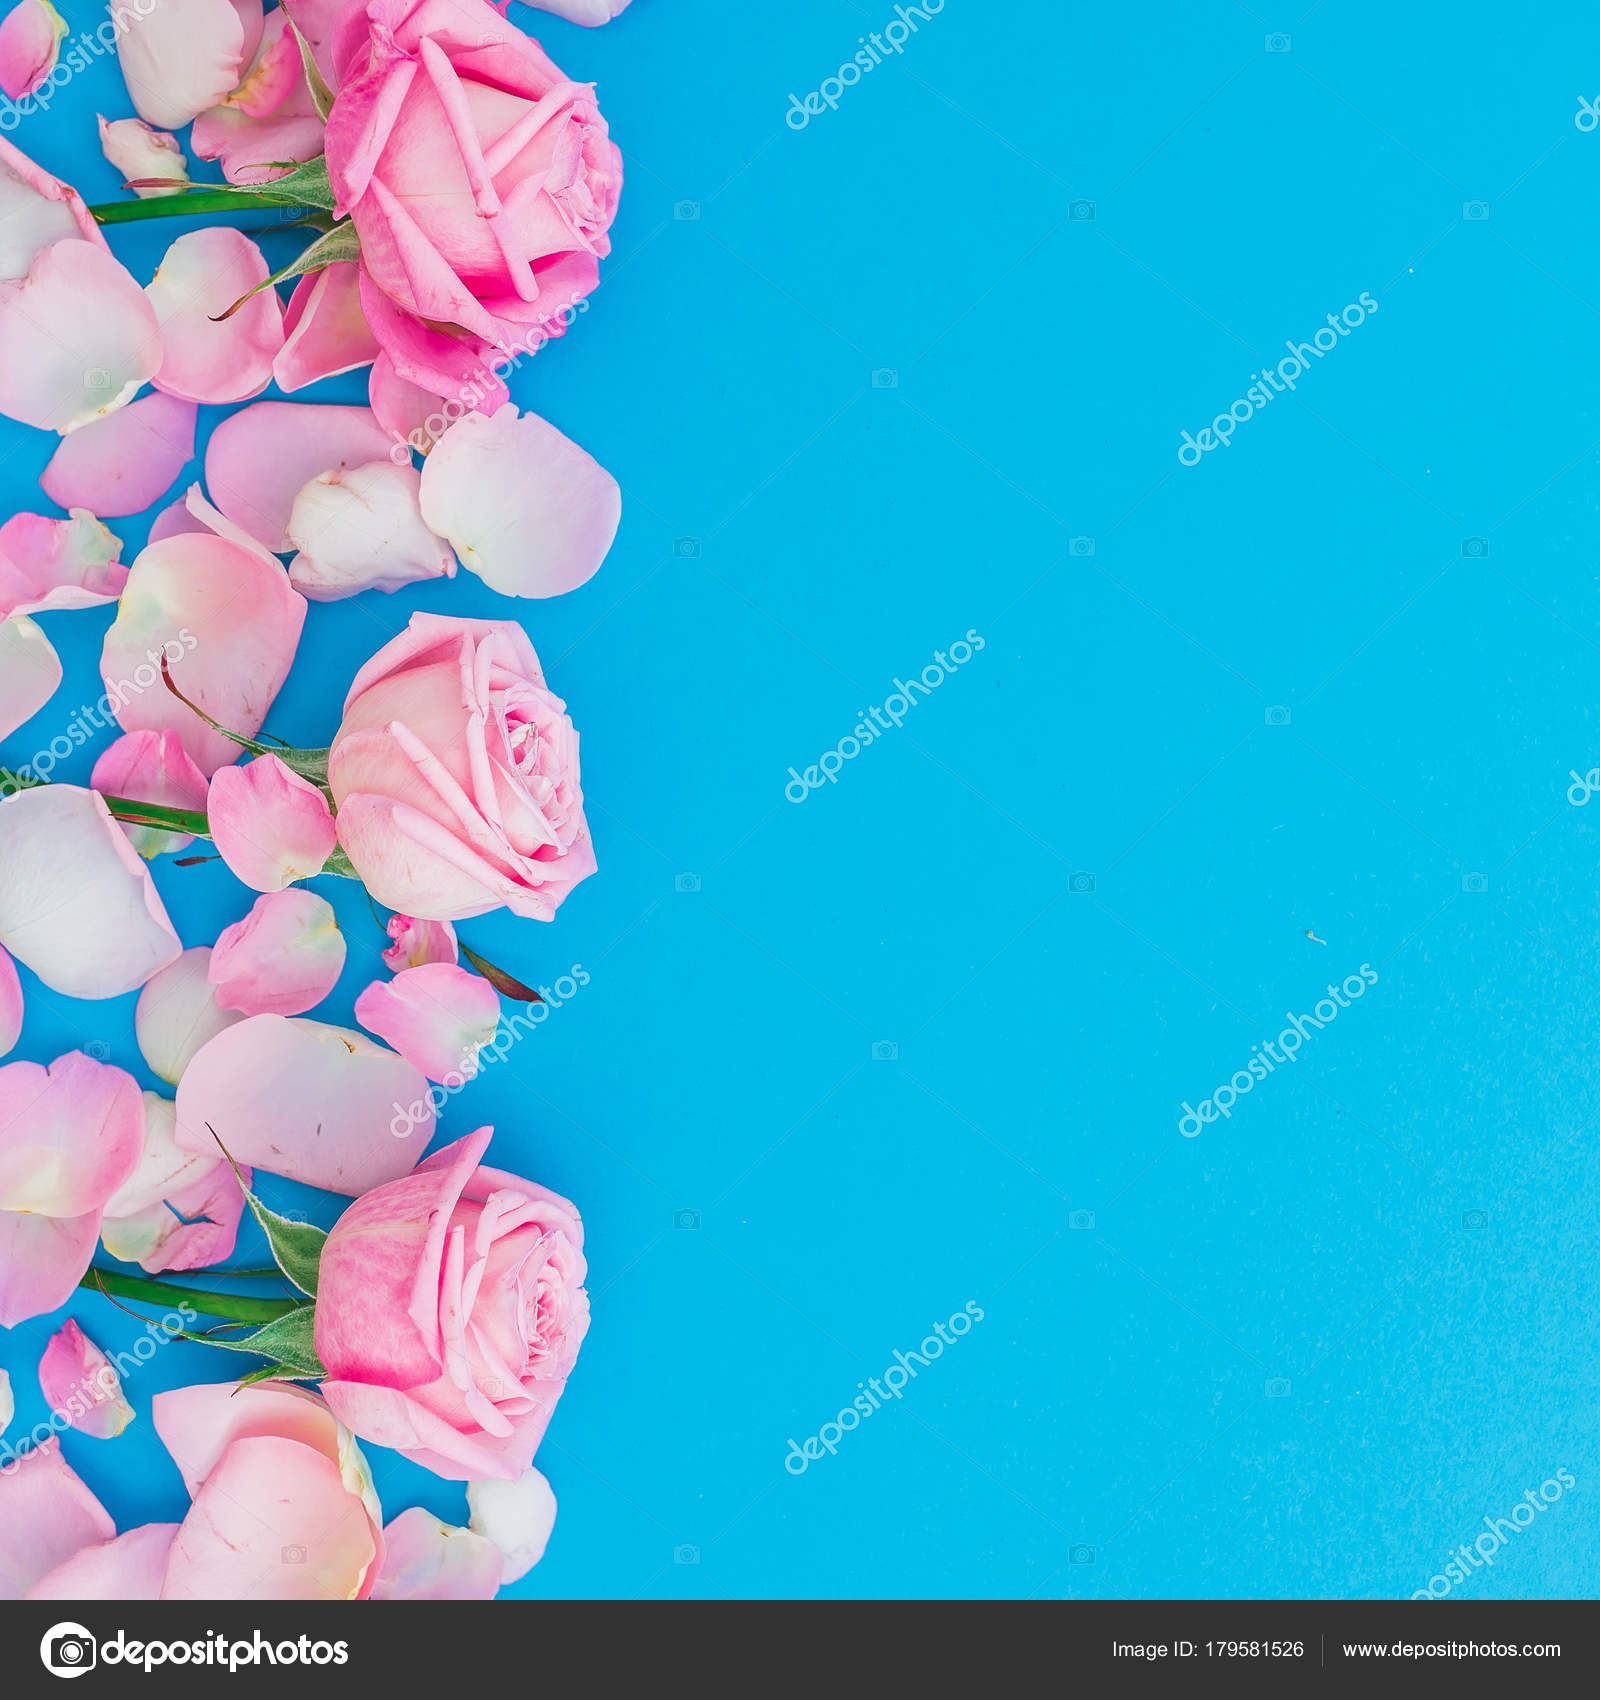 afd831e40a432 Floral Pattern Pink Roses Petals Blue Background Flat Lay Top — Stock Photo